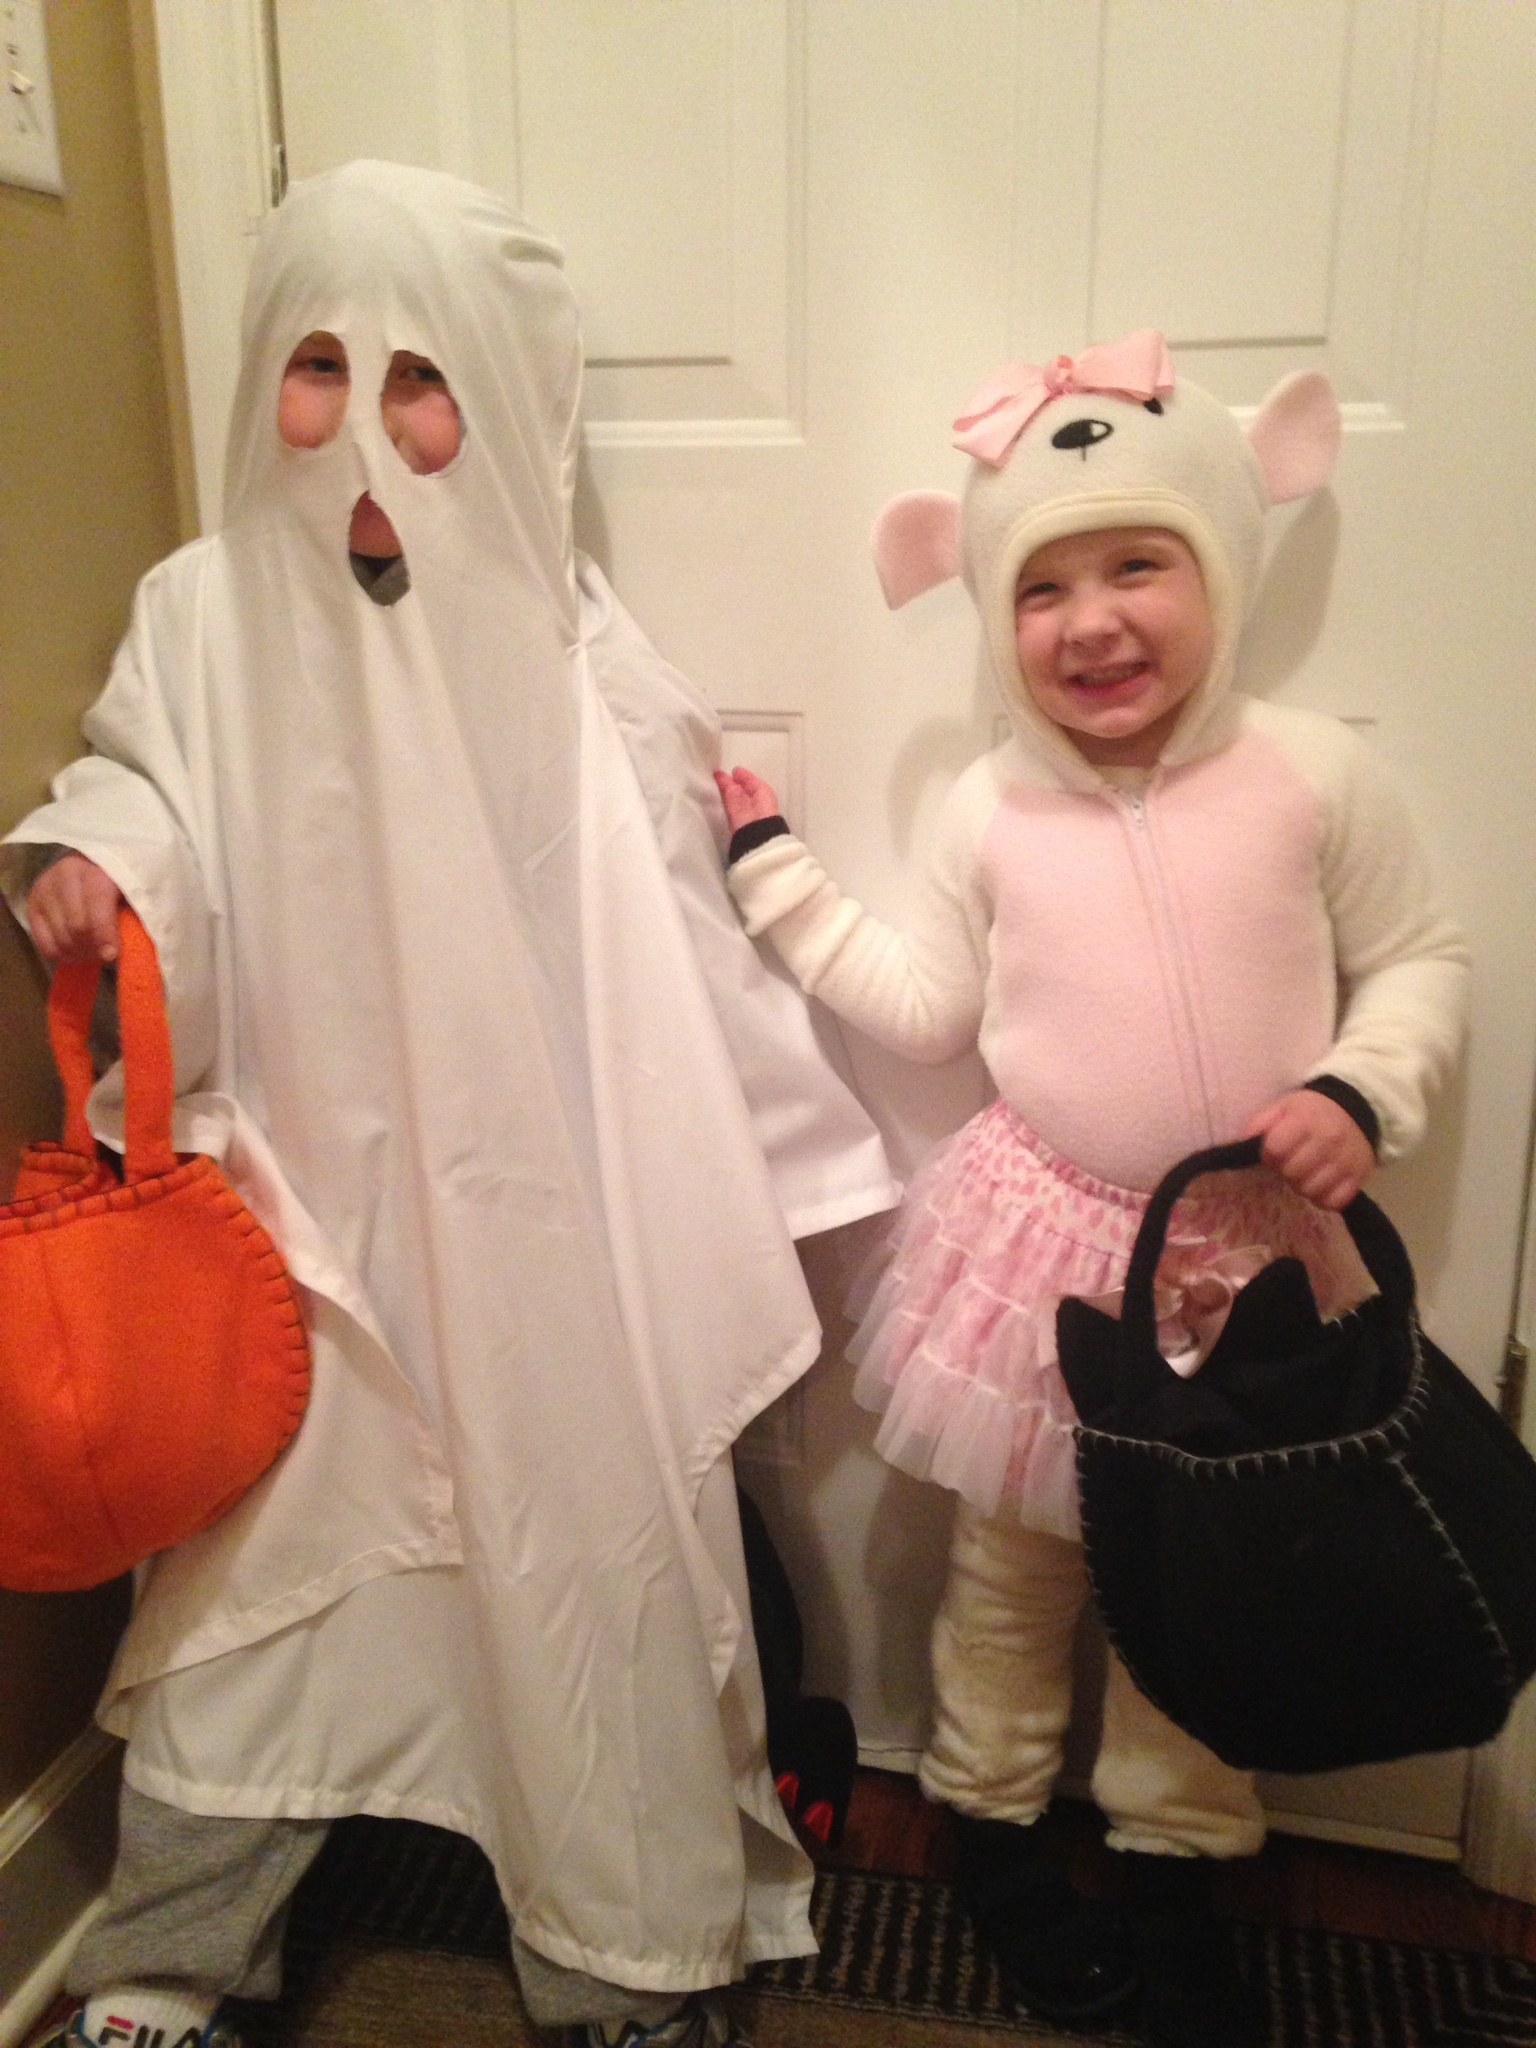 Nathan and Brianna getting ready to trick some treaters.